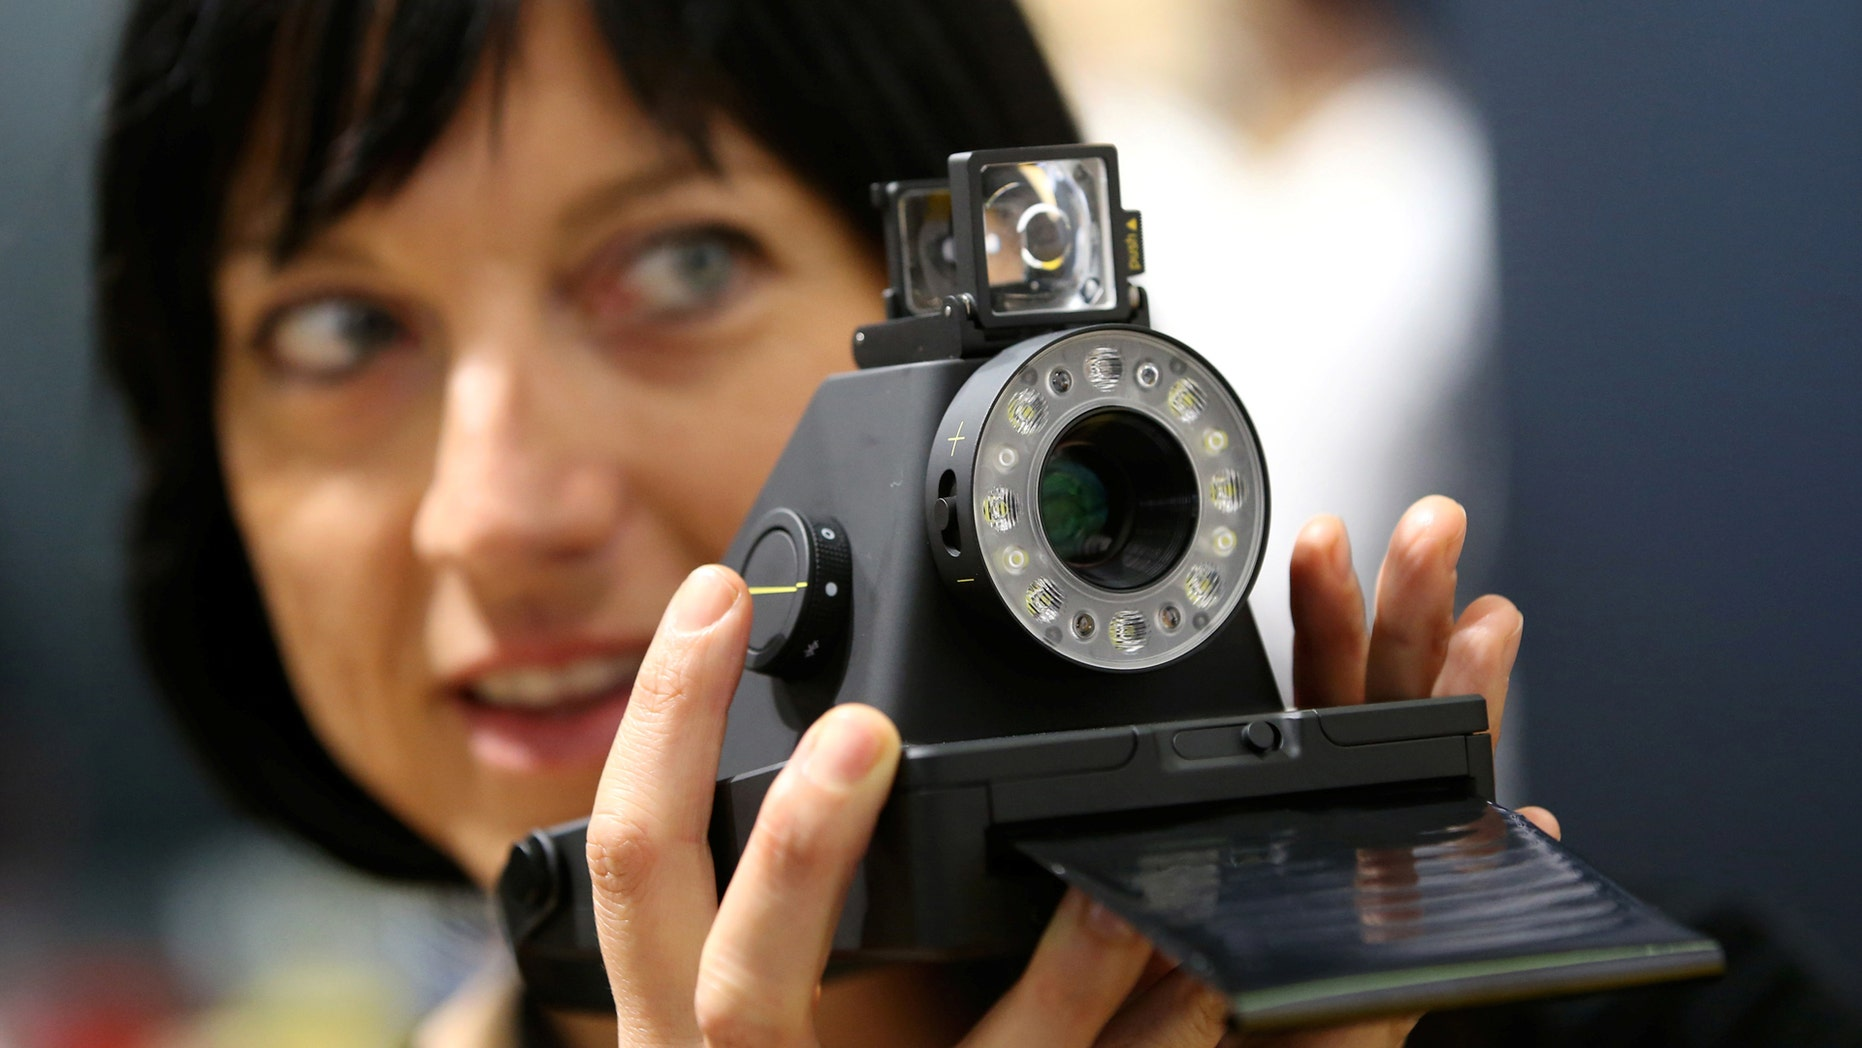 File photo: A woman takes a picture with the Impossible I-1 analog instant camera, the first new camera system working with the original Polaroid photo format, at the booth of the Impossible project on the Photokina, the world's largest fair for imaging in Cologne, Germany, September 20, 2016. (REUTERS/Fabrizio Bensch)